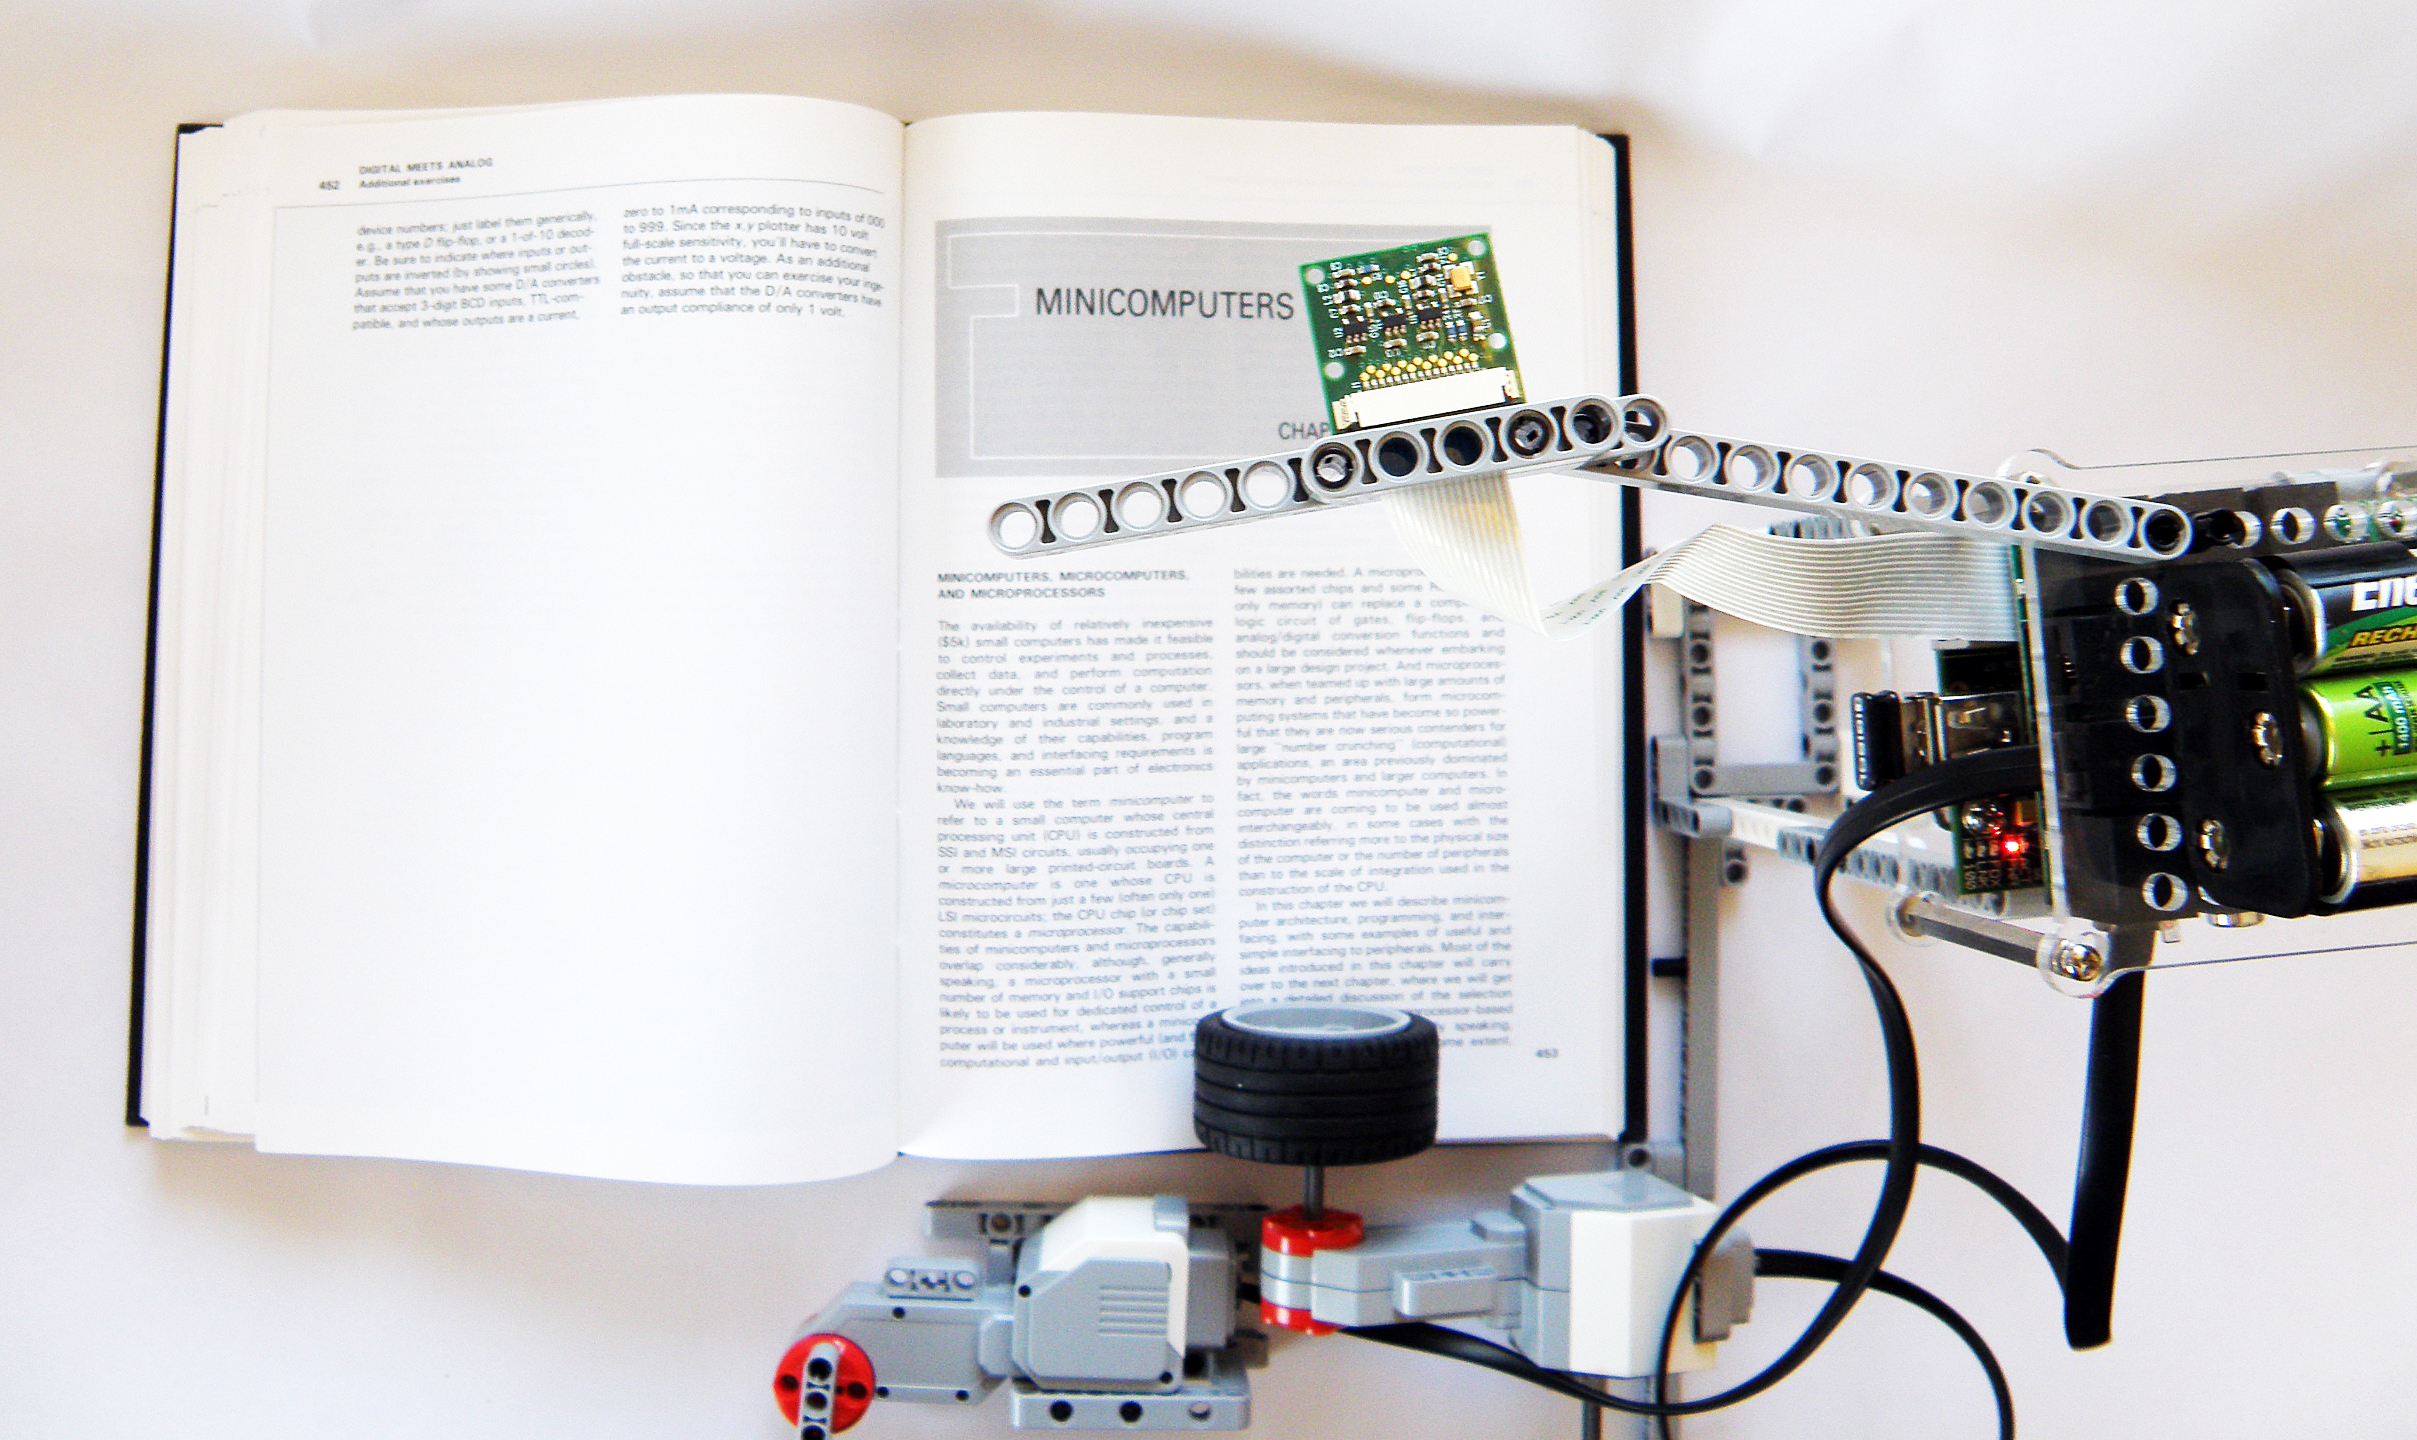 Digitize a book with the Raspberry Pi.